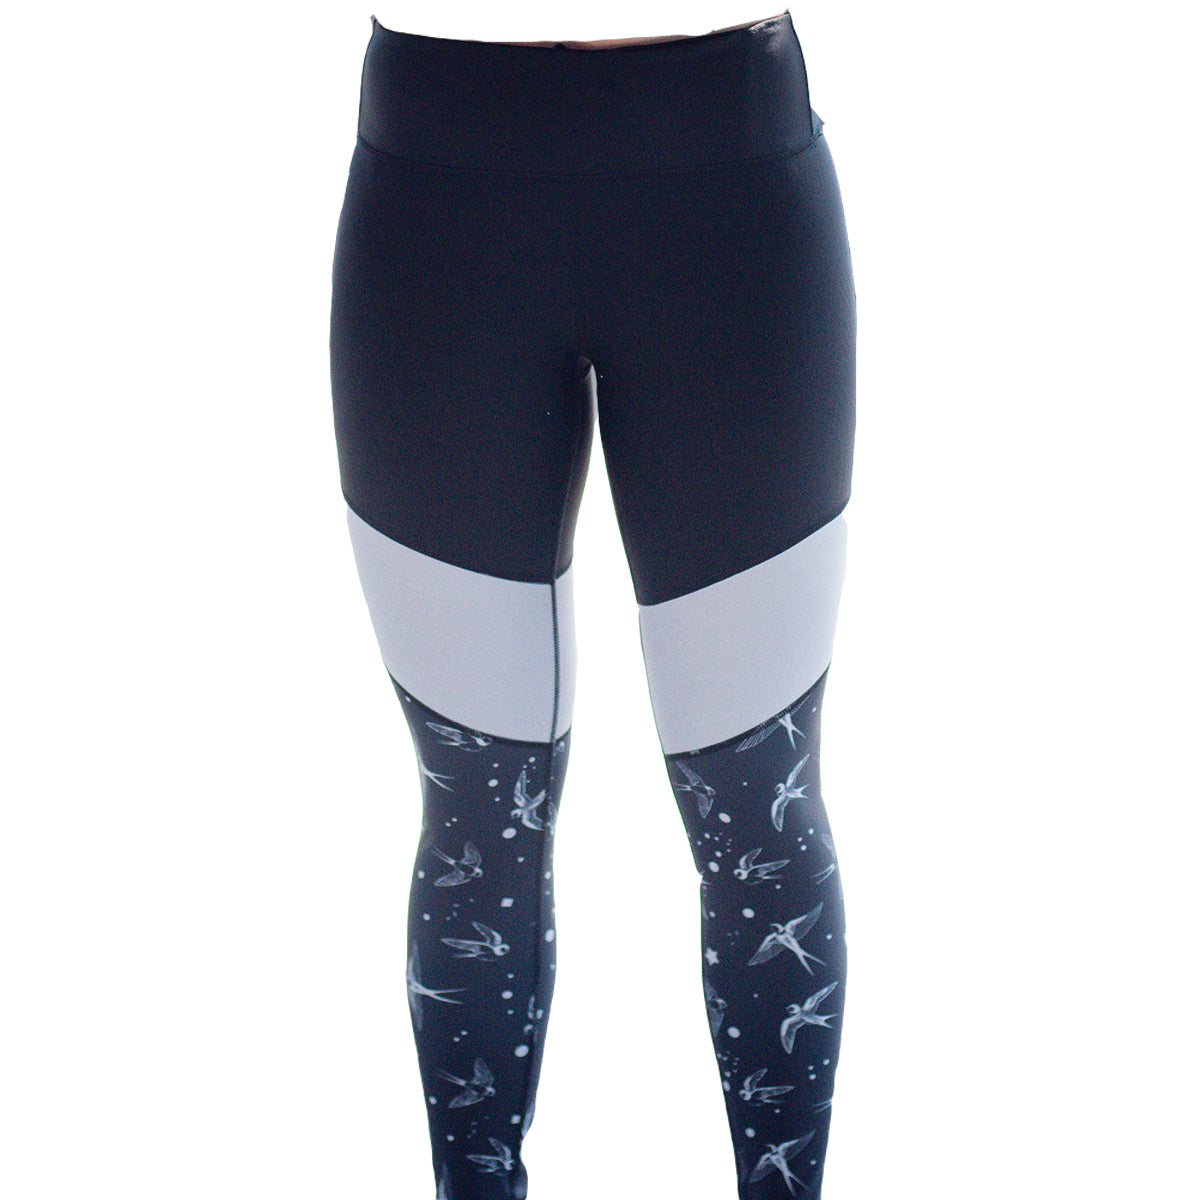 Songbird legging